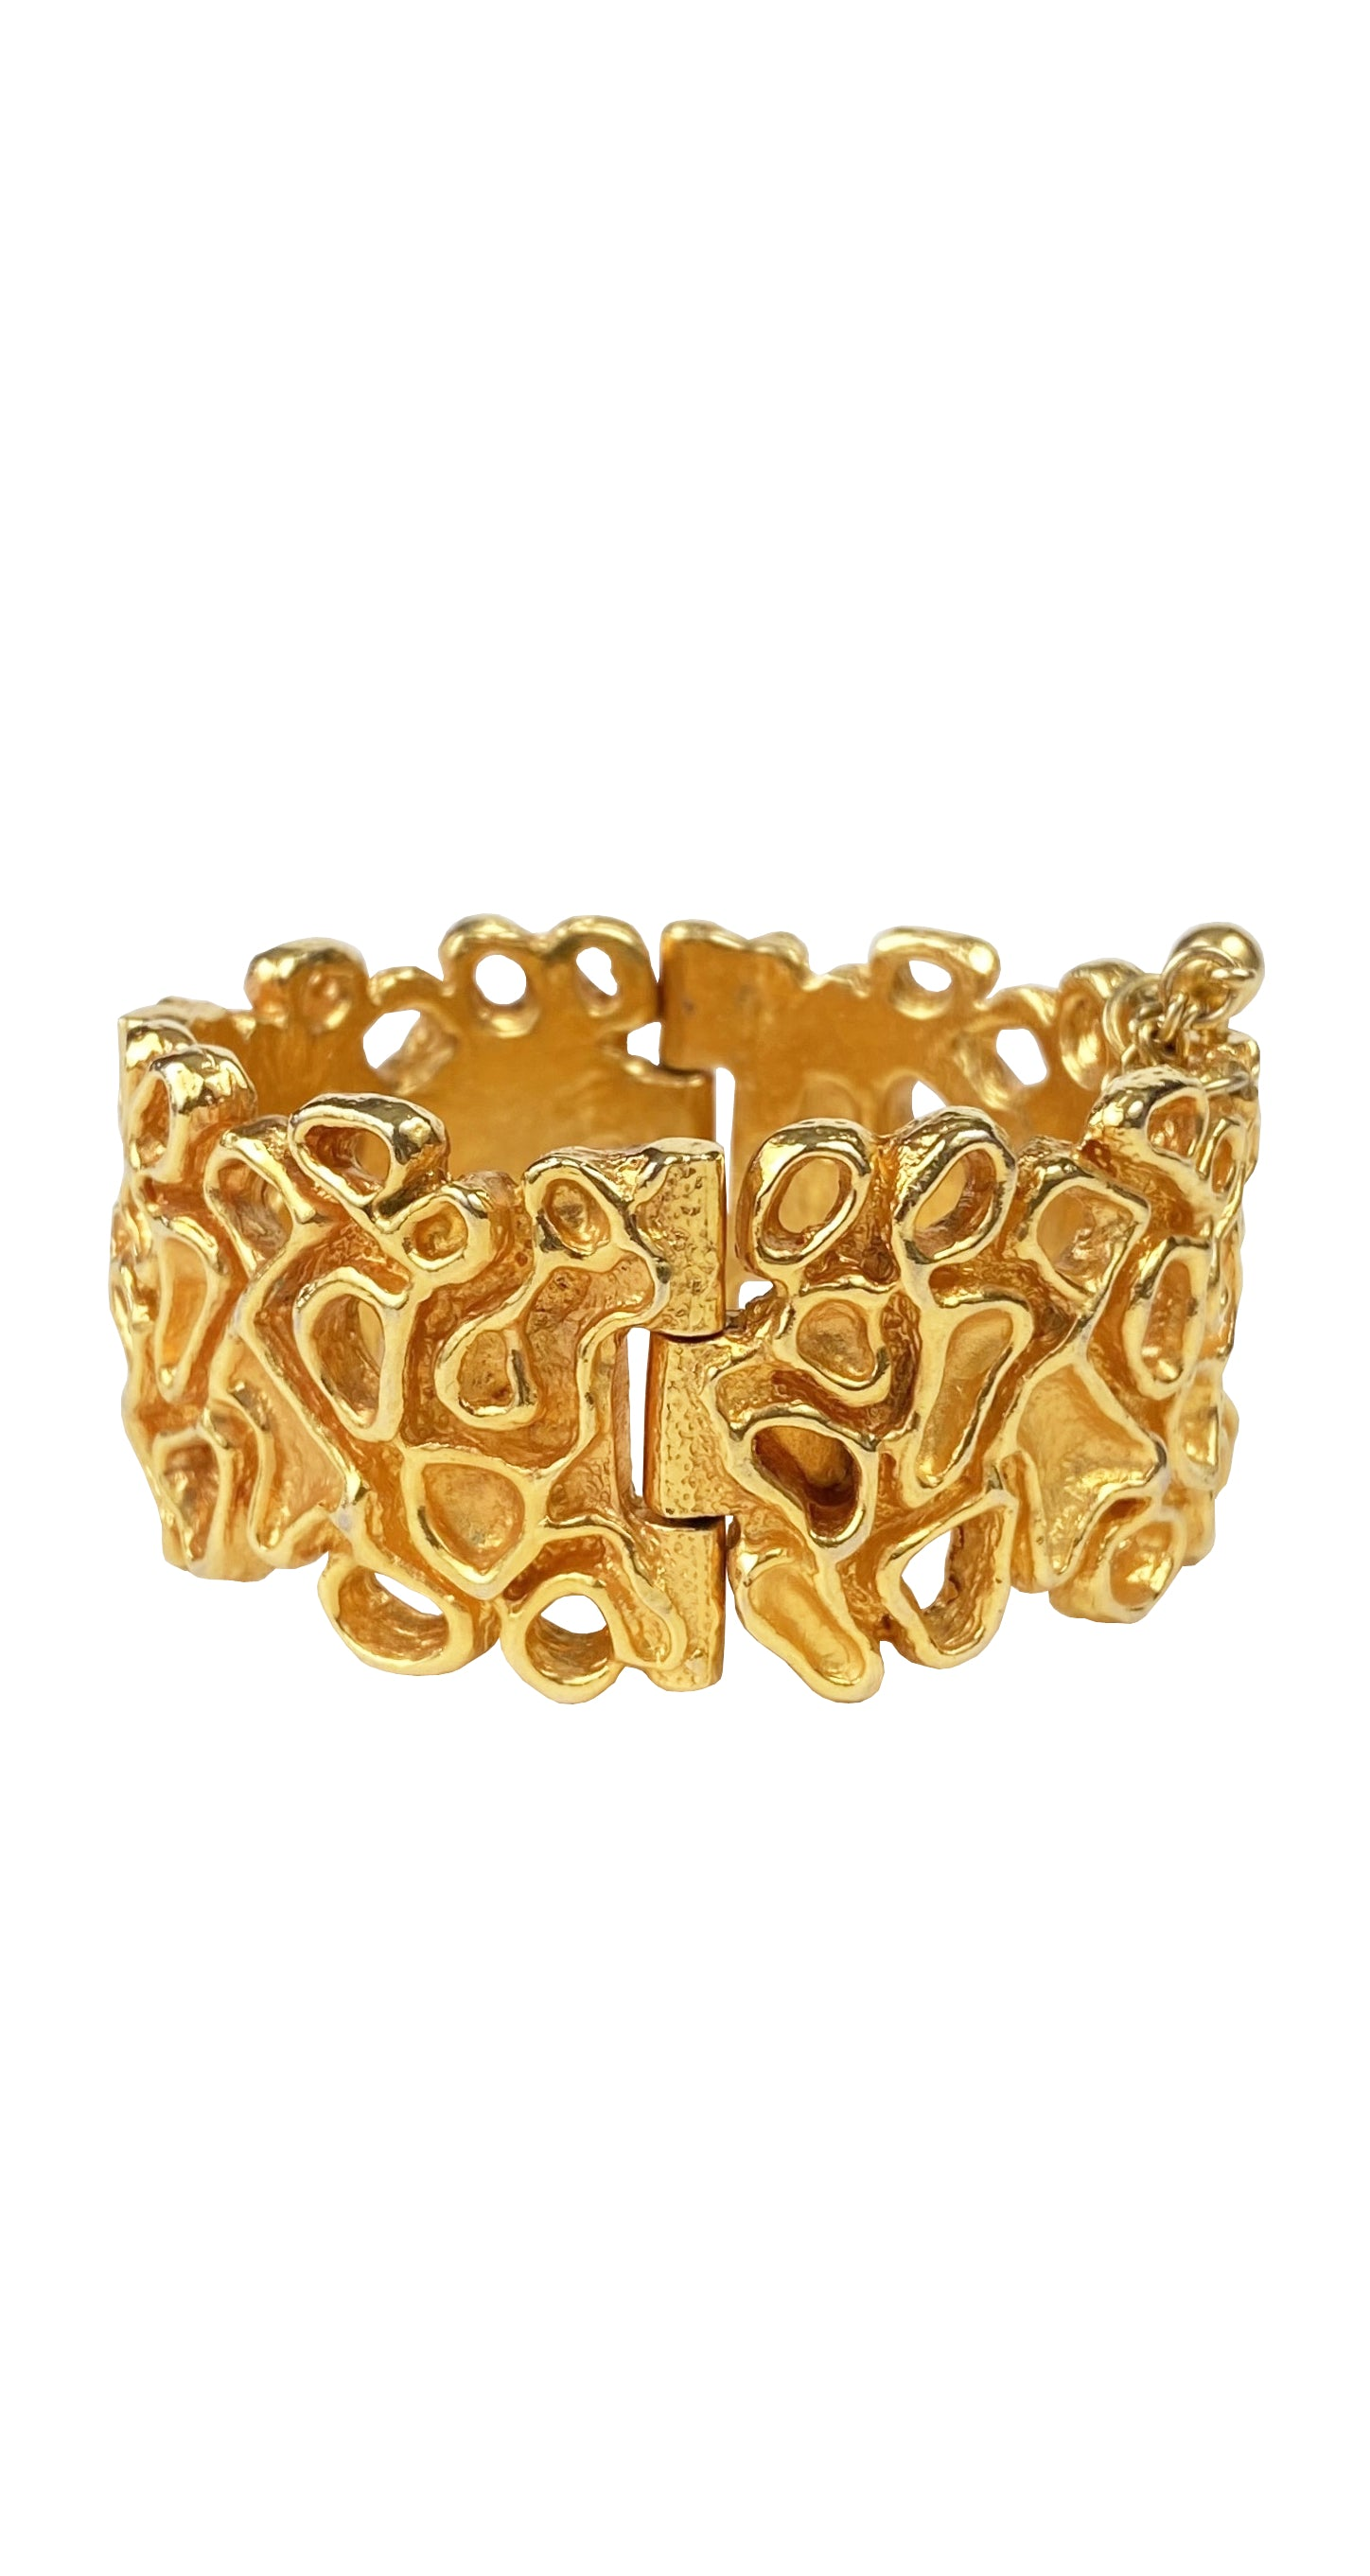 1970s Modernist Gold-Plated Hinged Bracelet